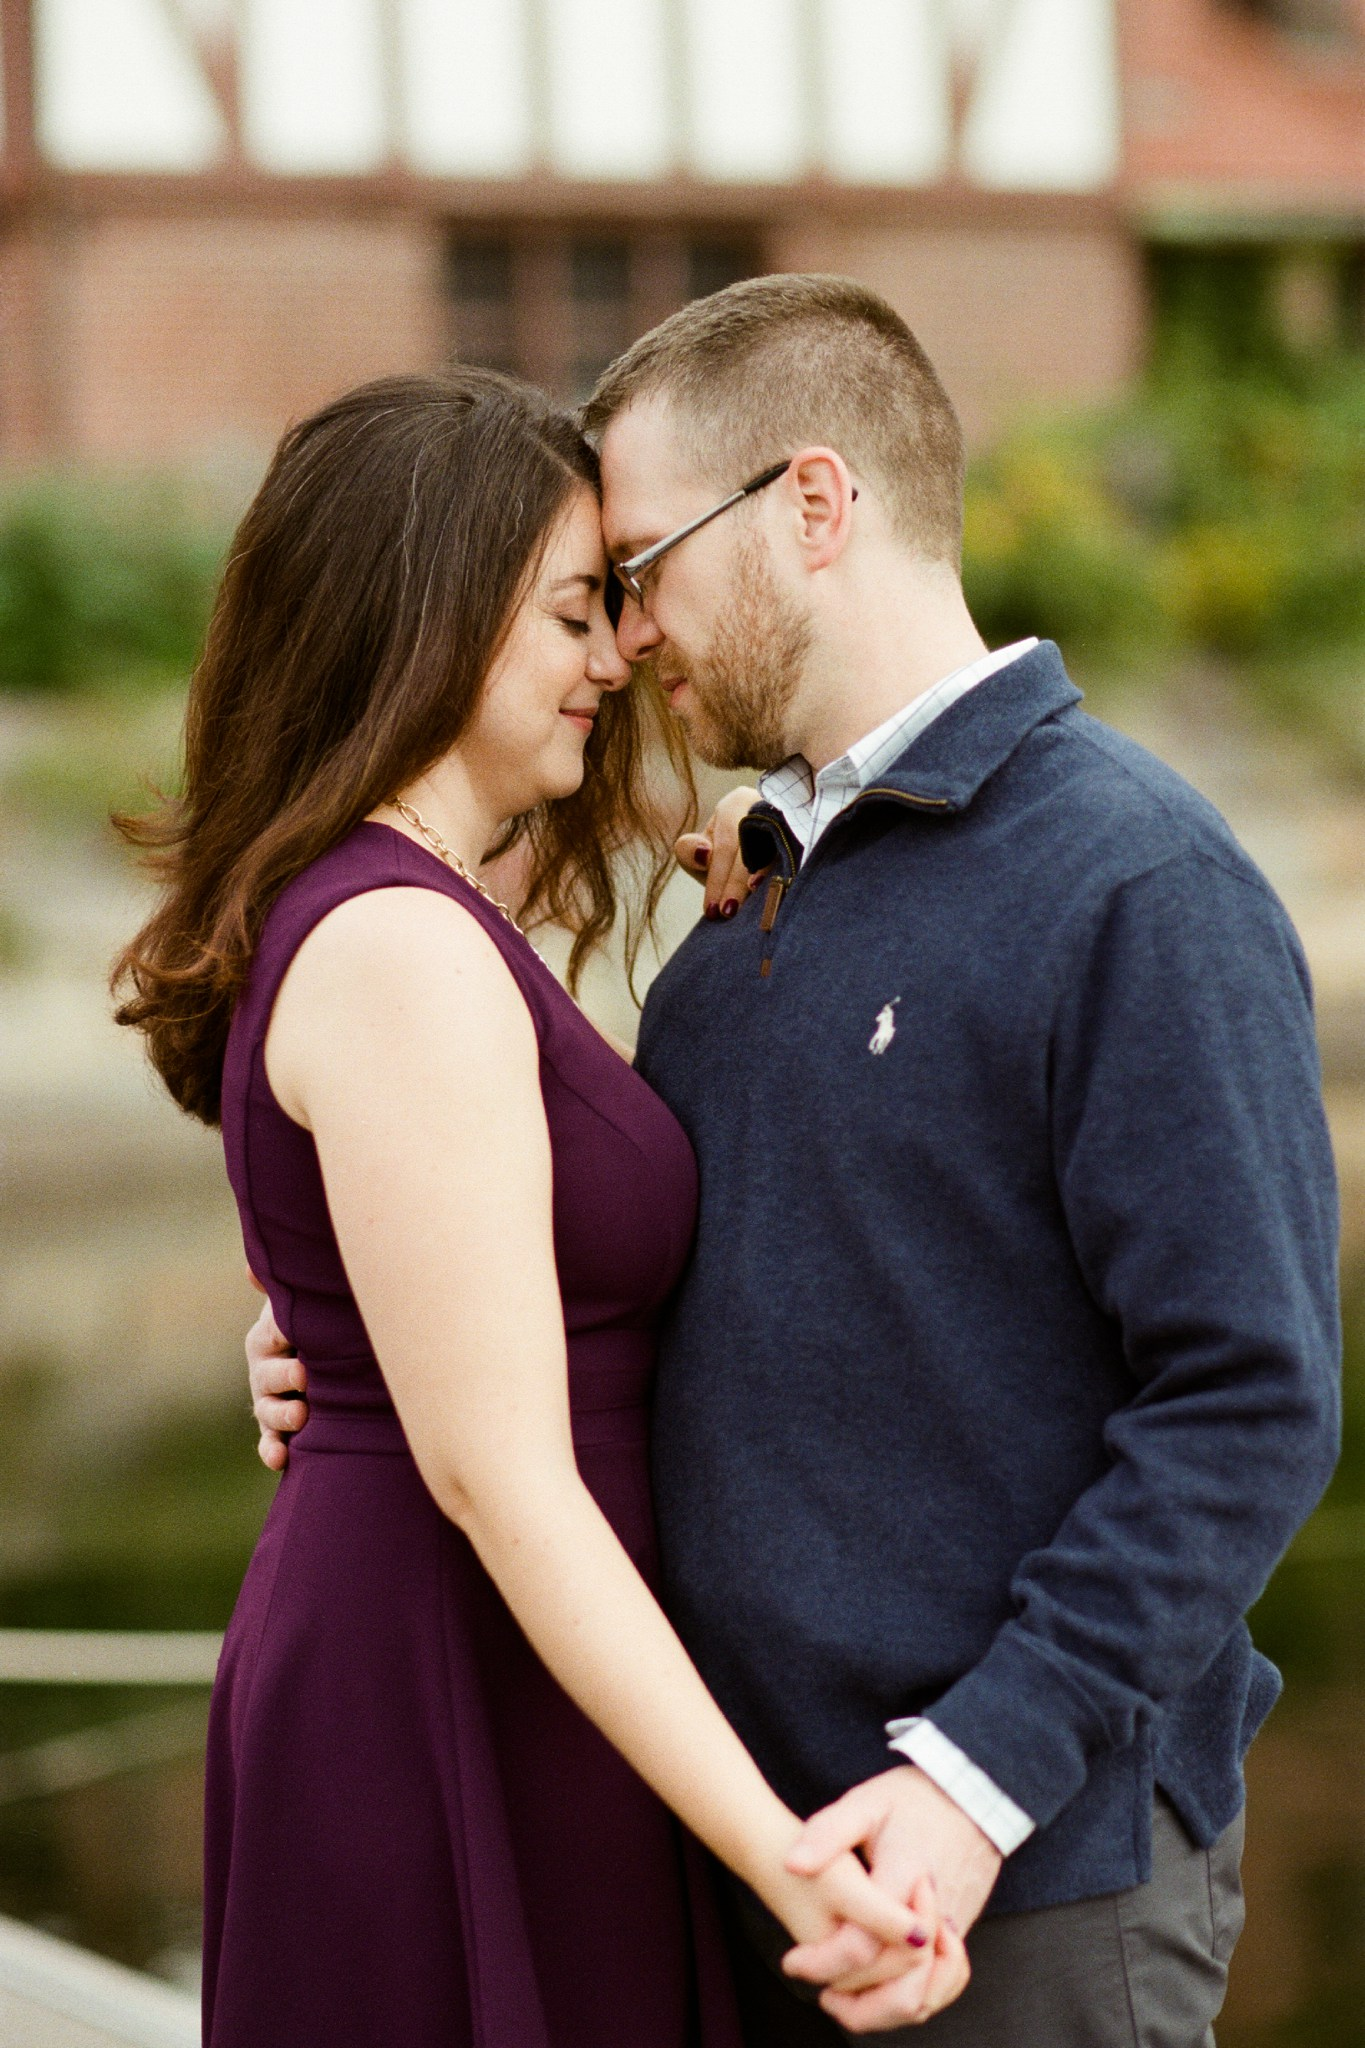 fall_engagement_session_boston_deborah_zoe_00004.jpg